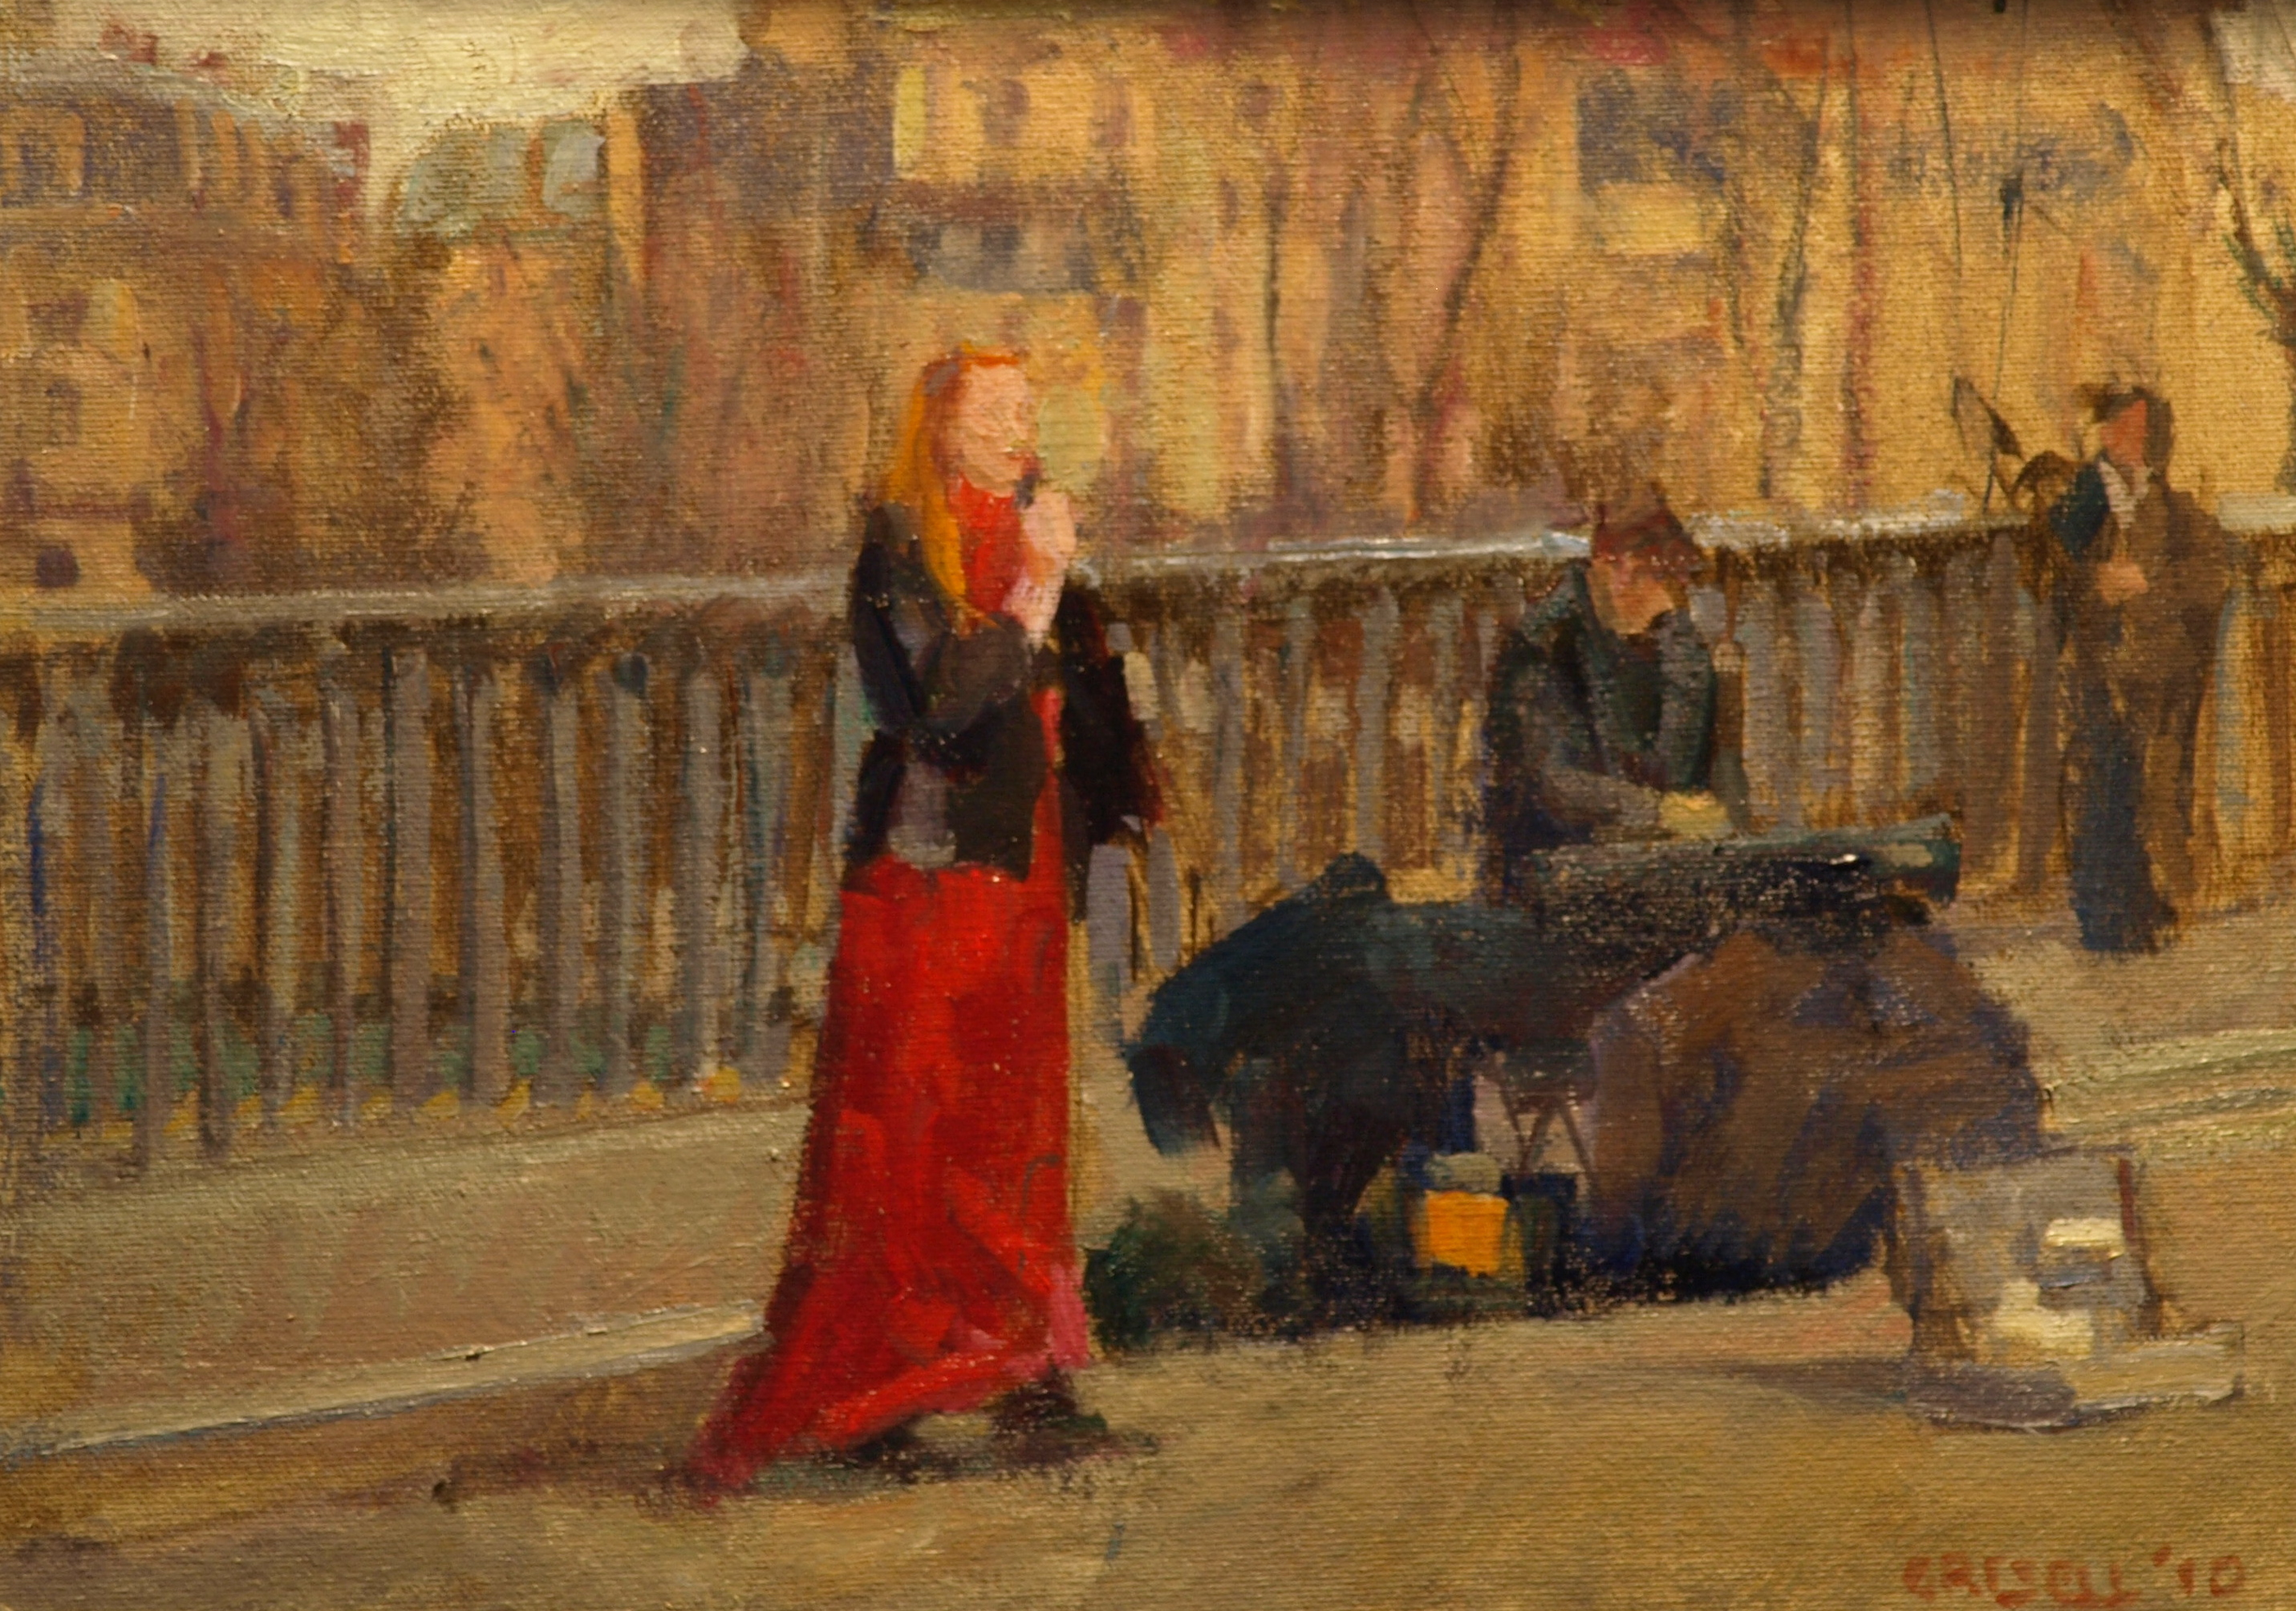 Street Musicians - Paris, Oil on Linen on Panel, 12 x 16 Inches, by Susan Grisell, $325